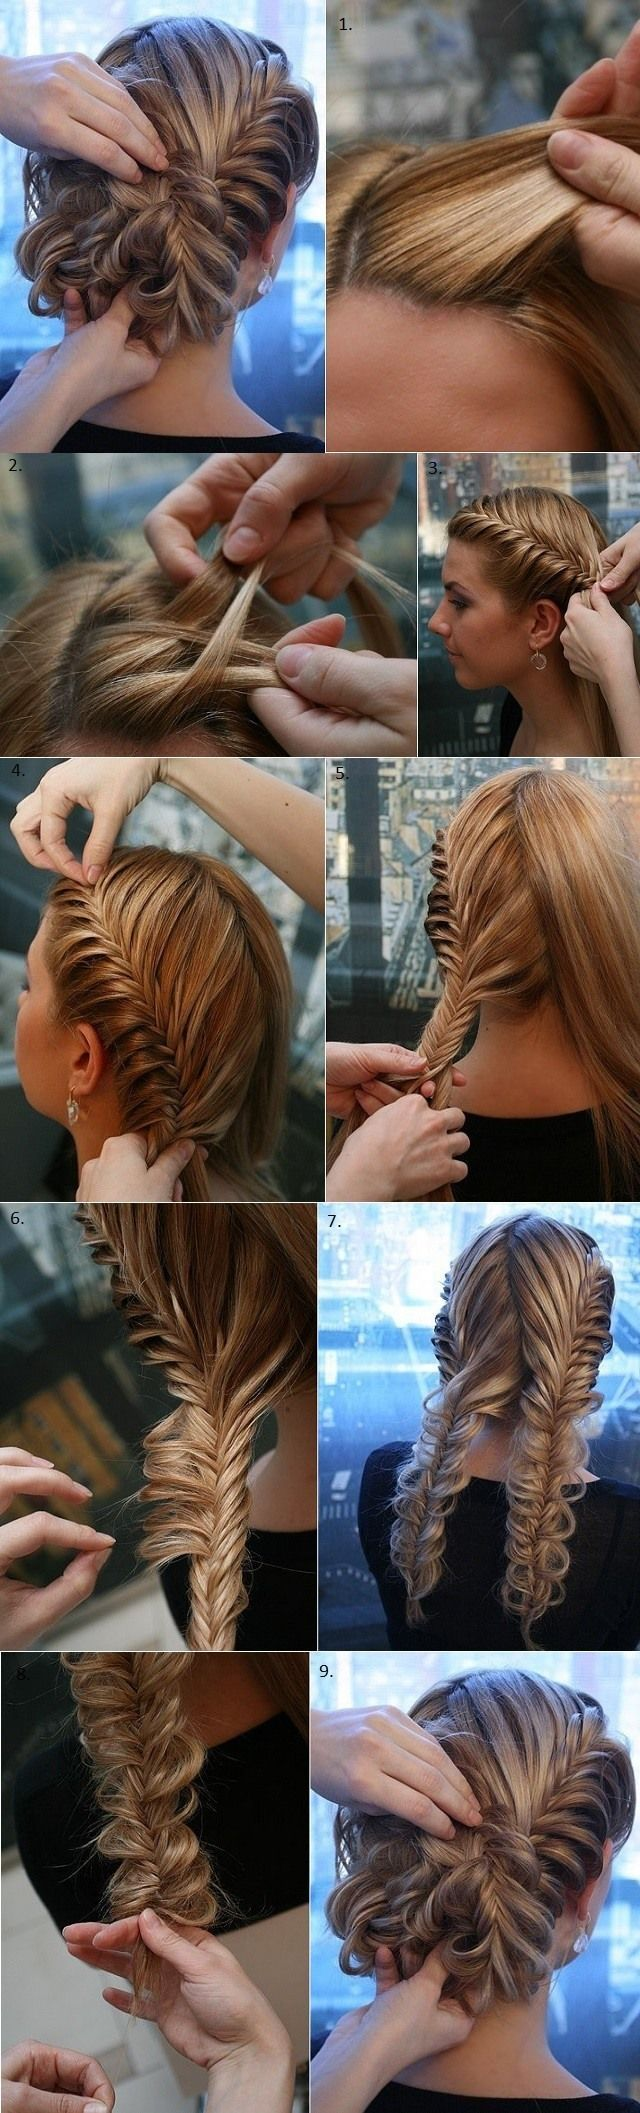 20 cute and simple braided hairstyle tutorials